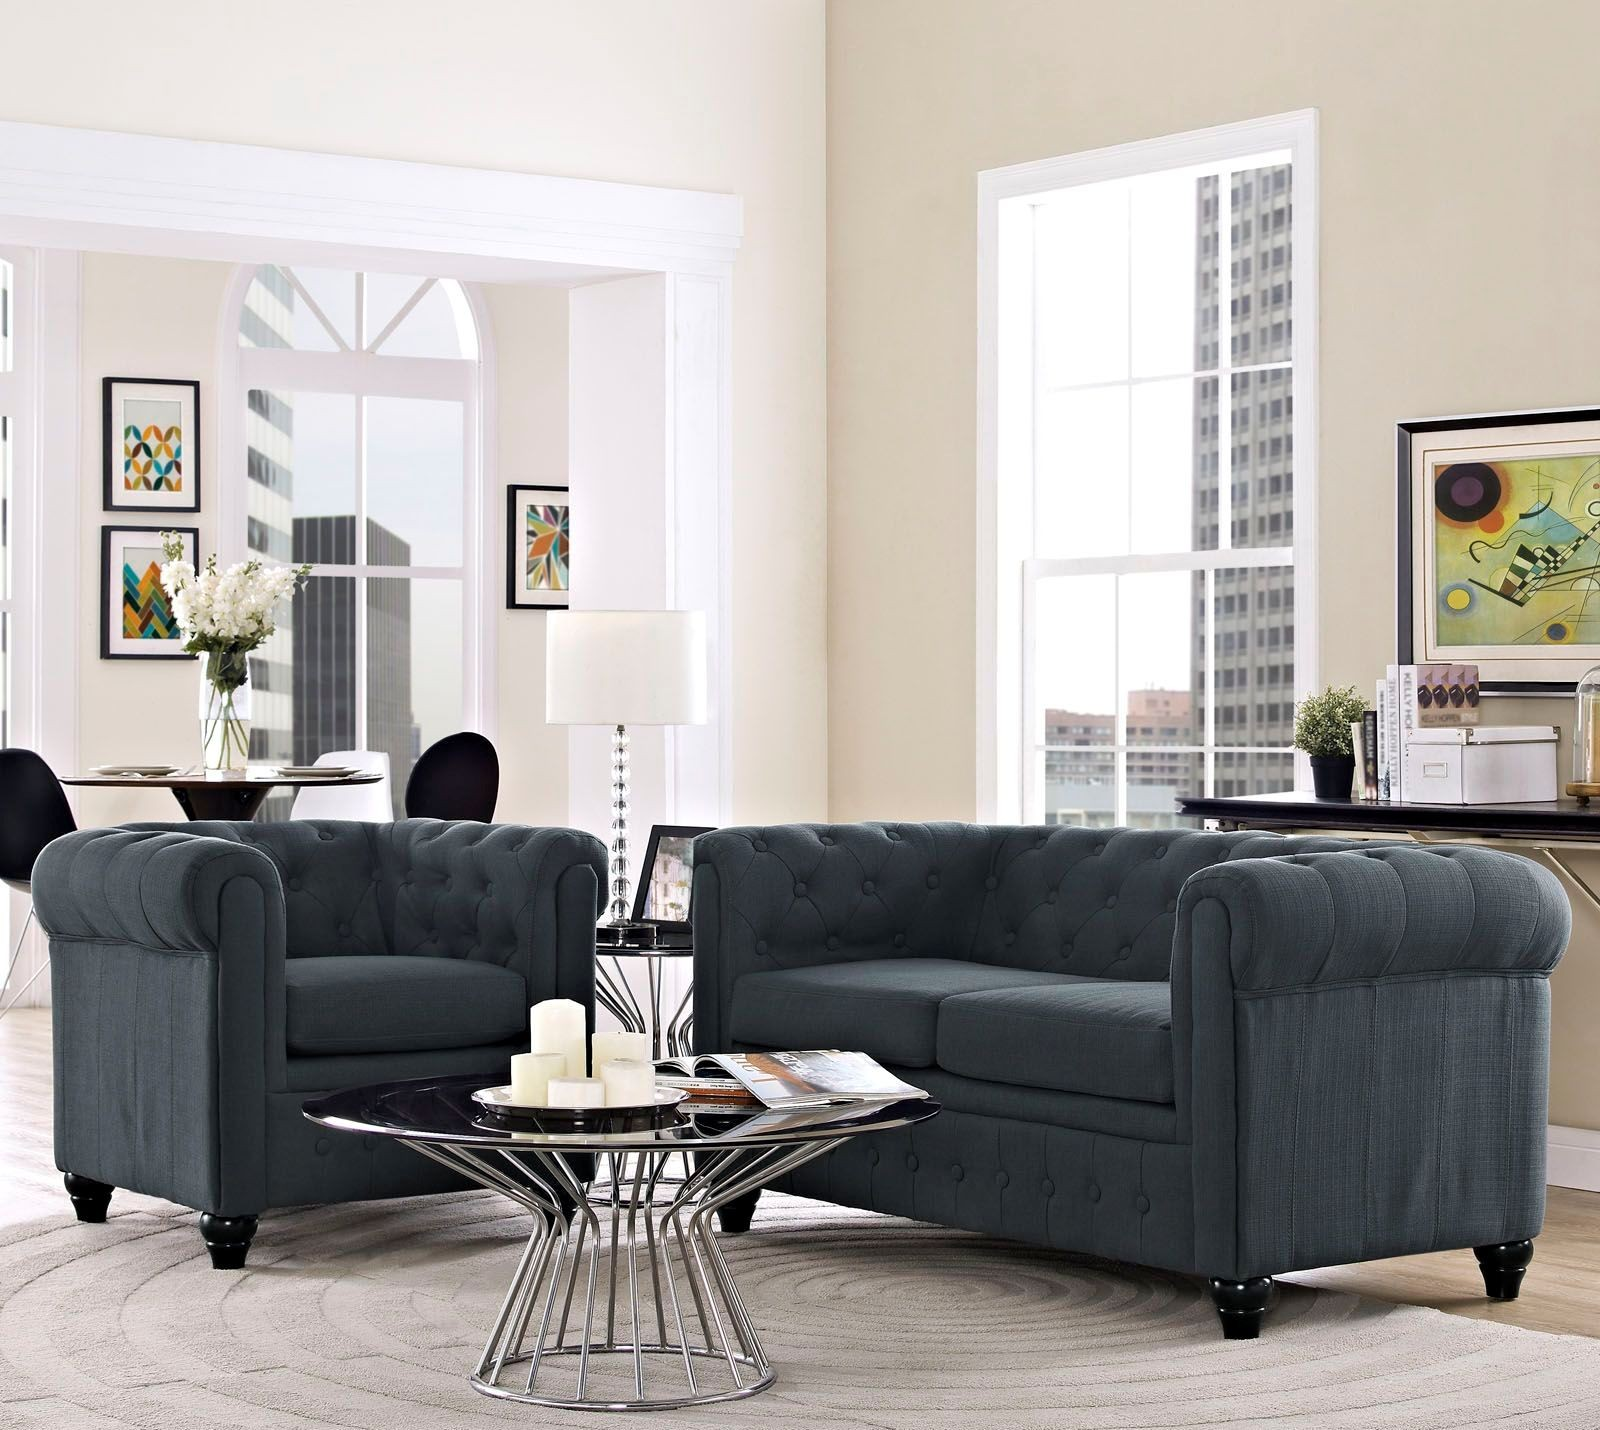 Eei 1777 gry set earl gray 2 piece upholstered living room for 7 piece living room set with tv